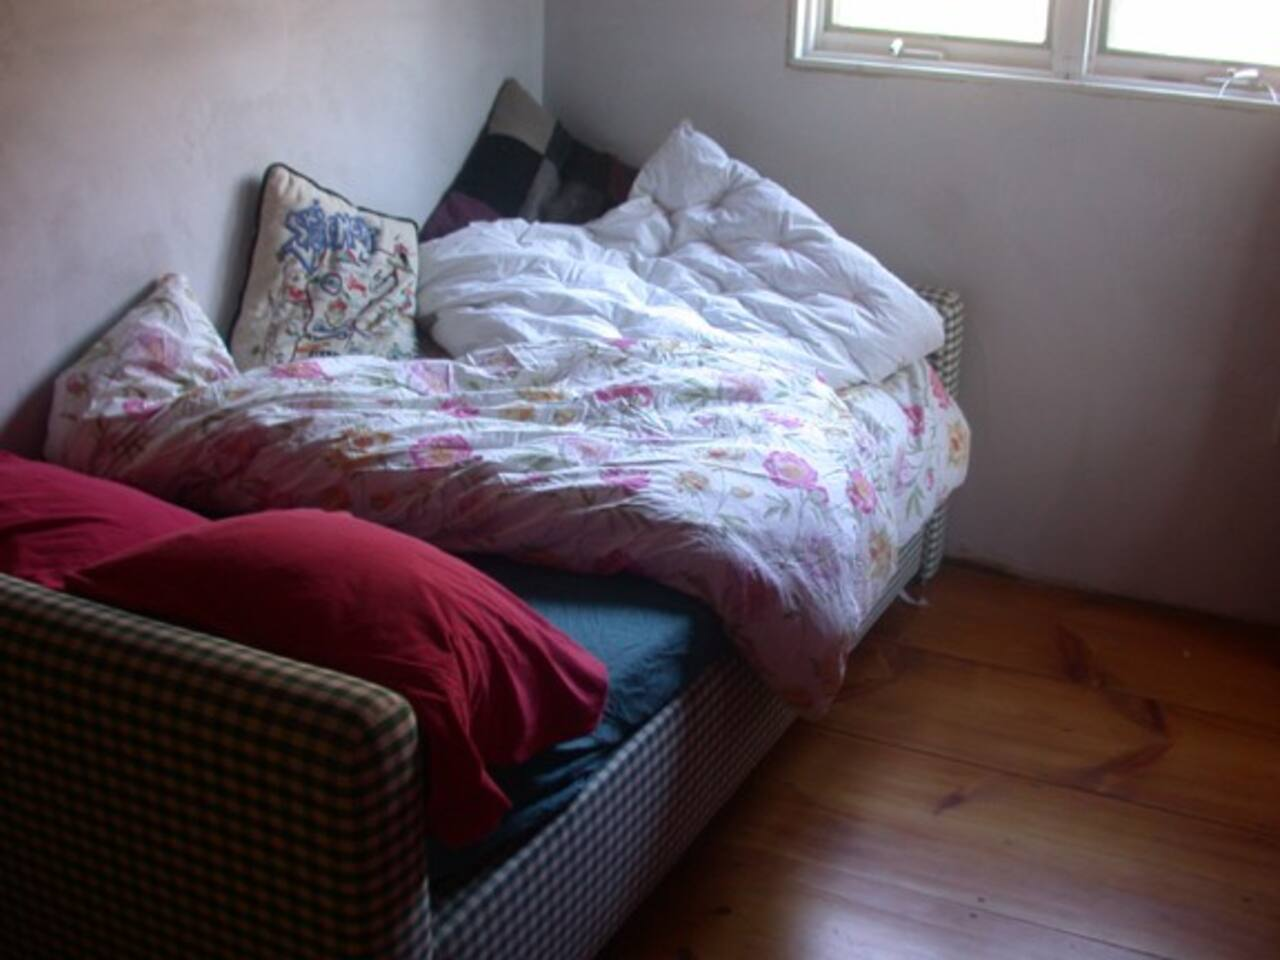 The Secret Room has a comfy, cozy daybed and is loaded with feathery pillows and down comforters.